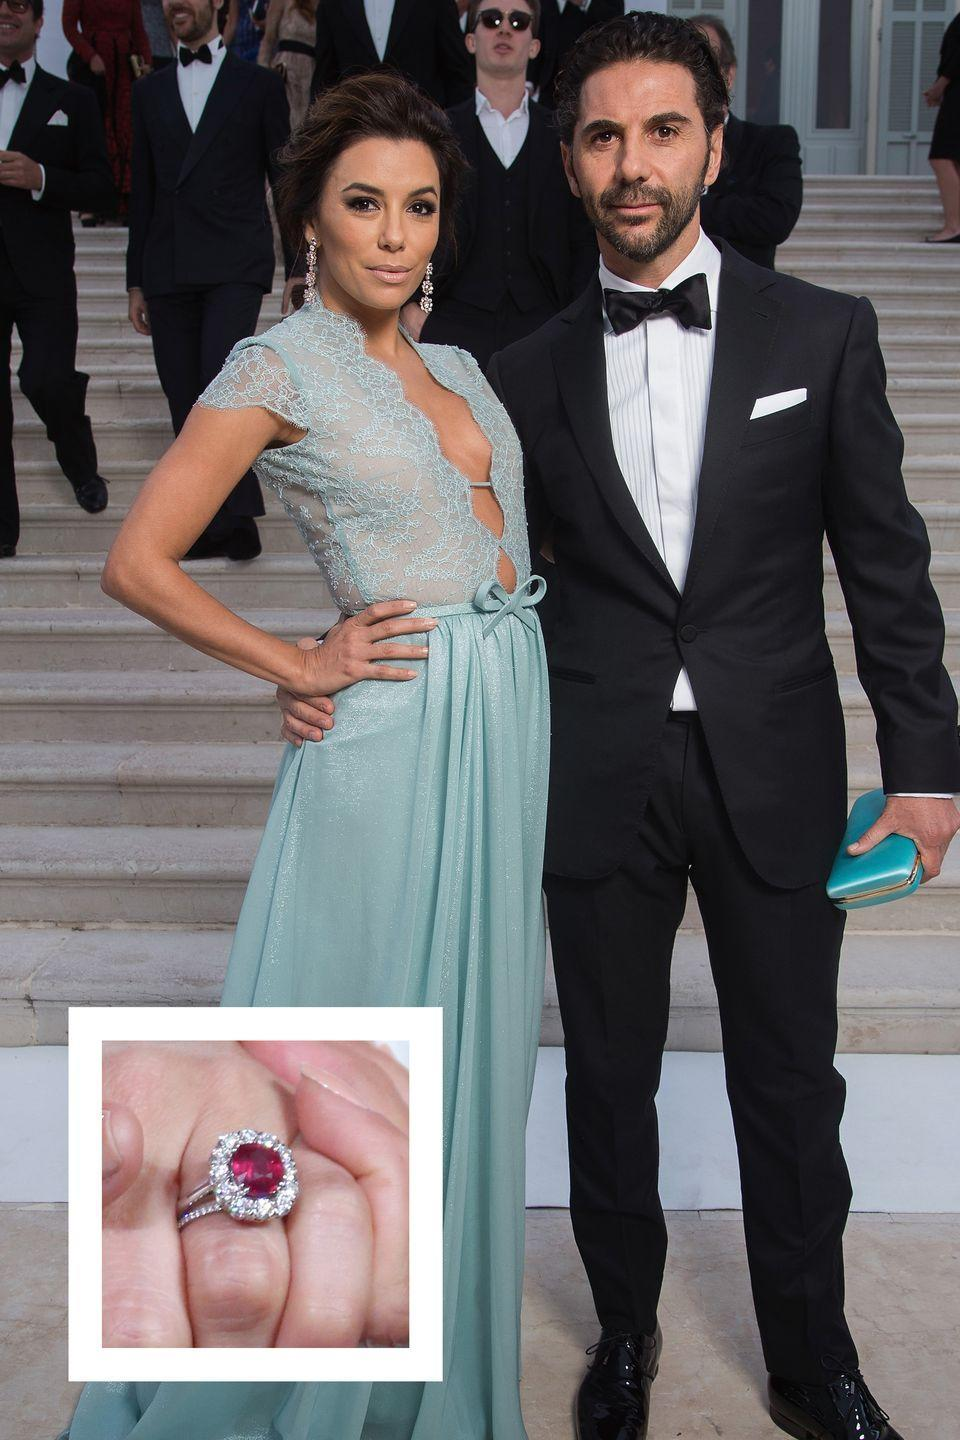 """<p>The actress, producer, and activist got engaged to her now-husband José Baston in December 2015 in Dubai. Baston proposed with a gorgeous ring featuring a six to eight carat ruby surrounded by a halo of diamonds, <a href=""""http://www.theknotnews.com/eva-longoria-on-ellen-ruby-engagement-ring-and-meeting-fiance-3169"""" rel=""""nofollow noopener"""" target=""""_blank"""" data-ylk=""""slk:the Knot reports."""" class=""""link rapid-noclick-resp""""><em>the Knot </em>reports.</a></p>"""